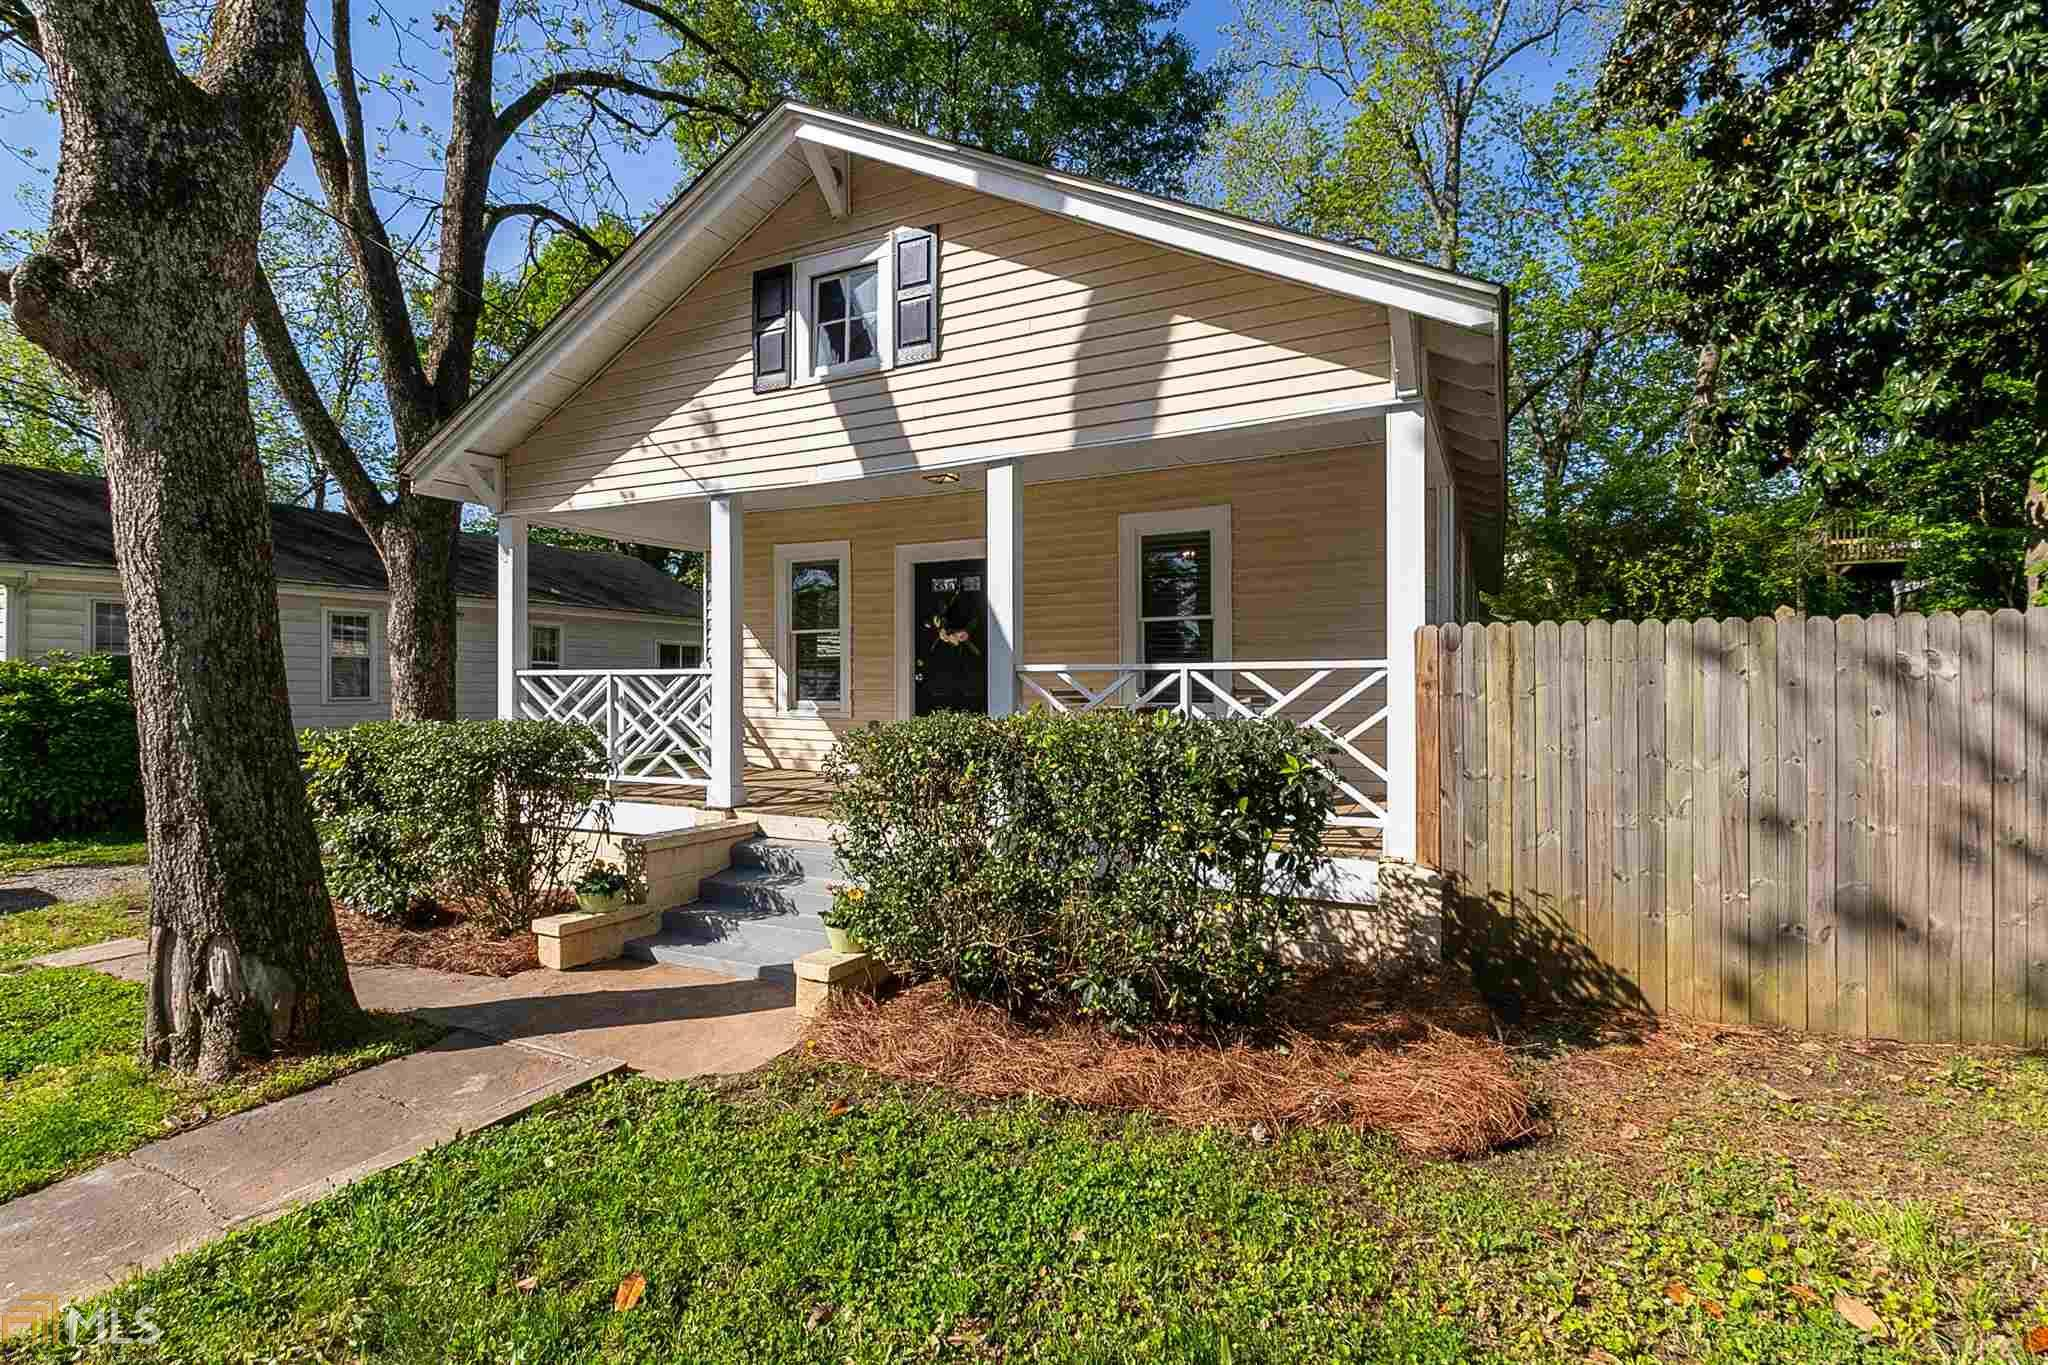 145 Church St, Buford, Georgia 30518, 2 Bedrooms Bedrooms, ,1 BathroomBathrooms,Single Family,For Sale,145 Church St,1,8970493